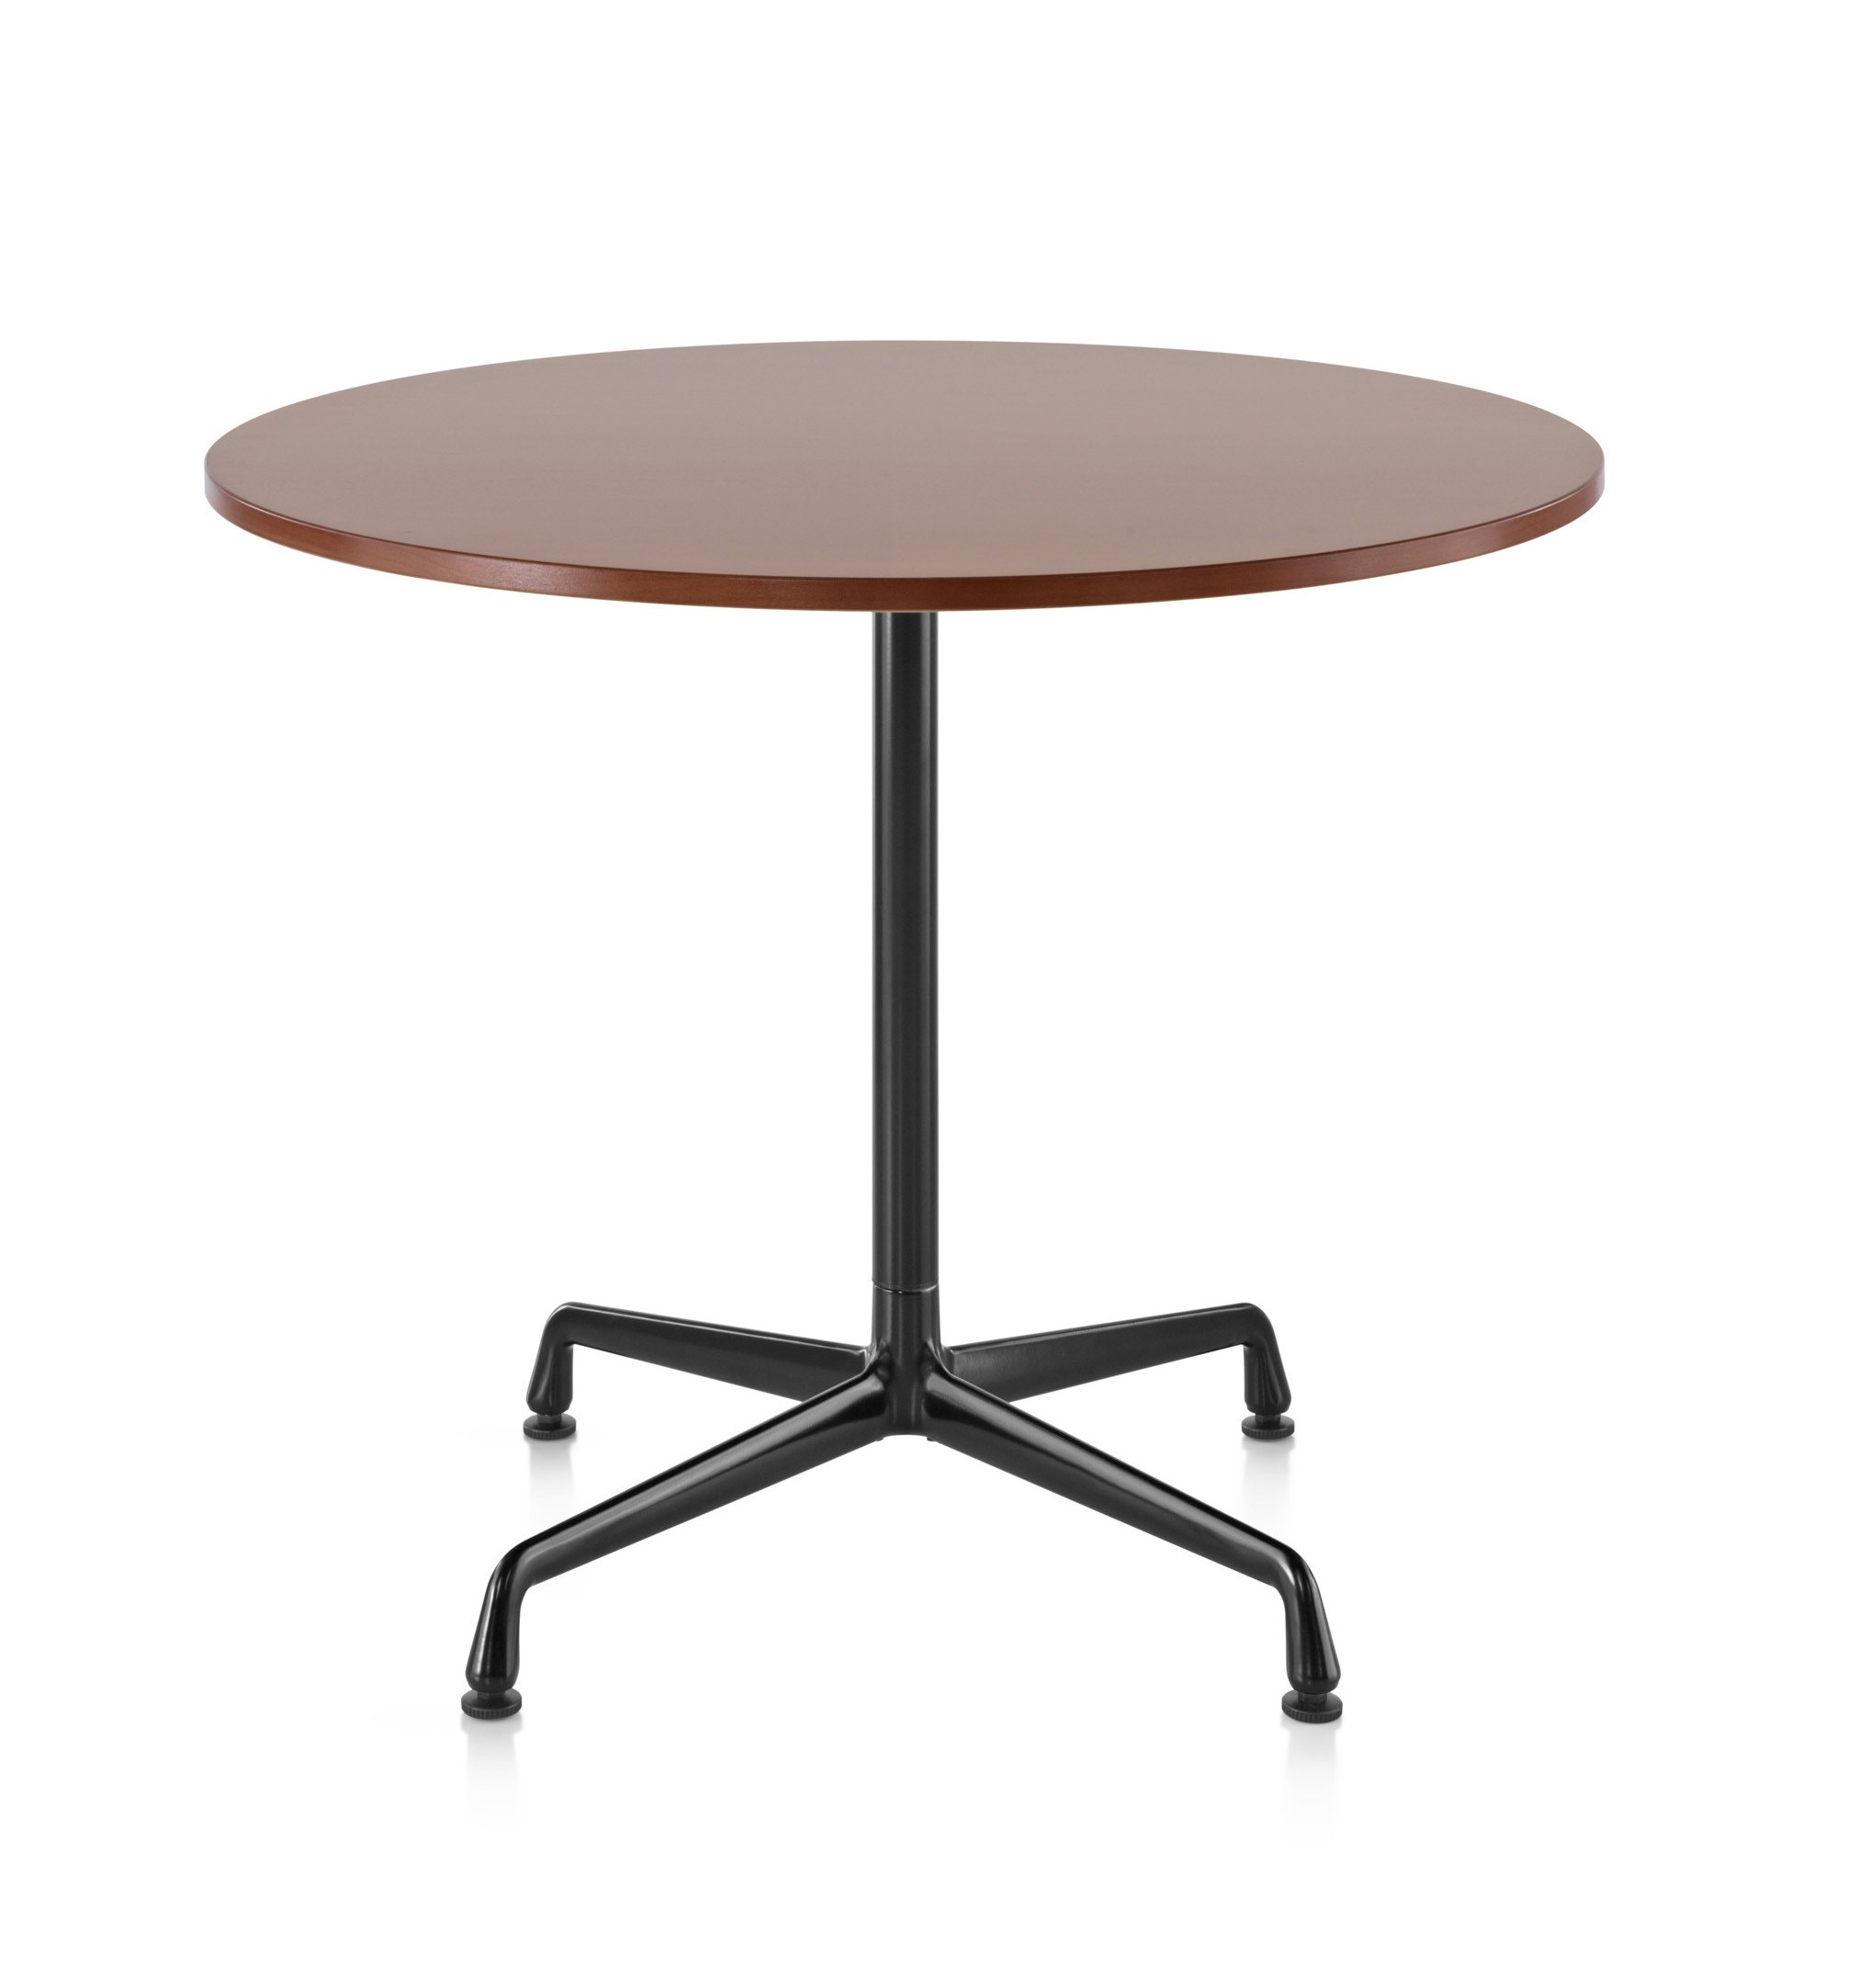 Herman Miller Eames® Conference Table, Round